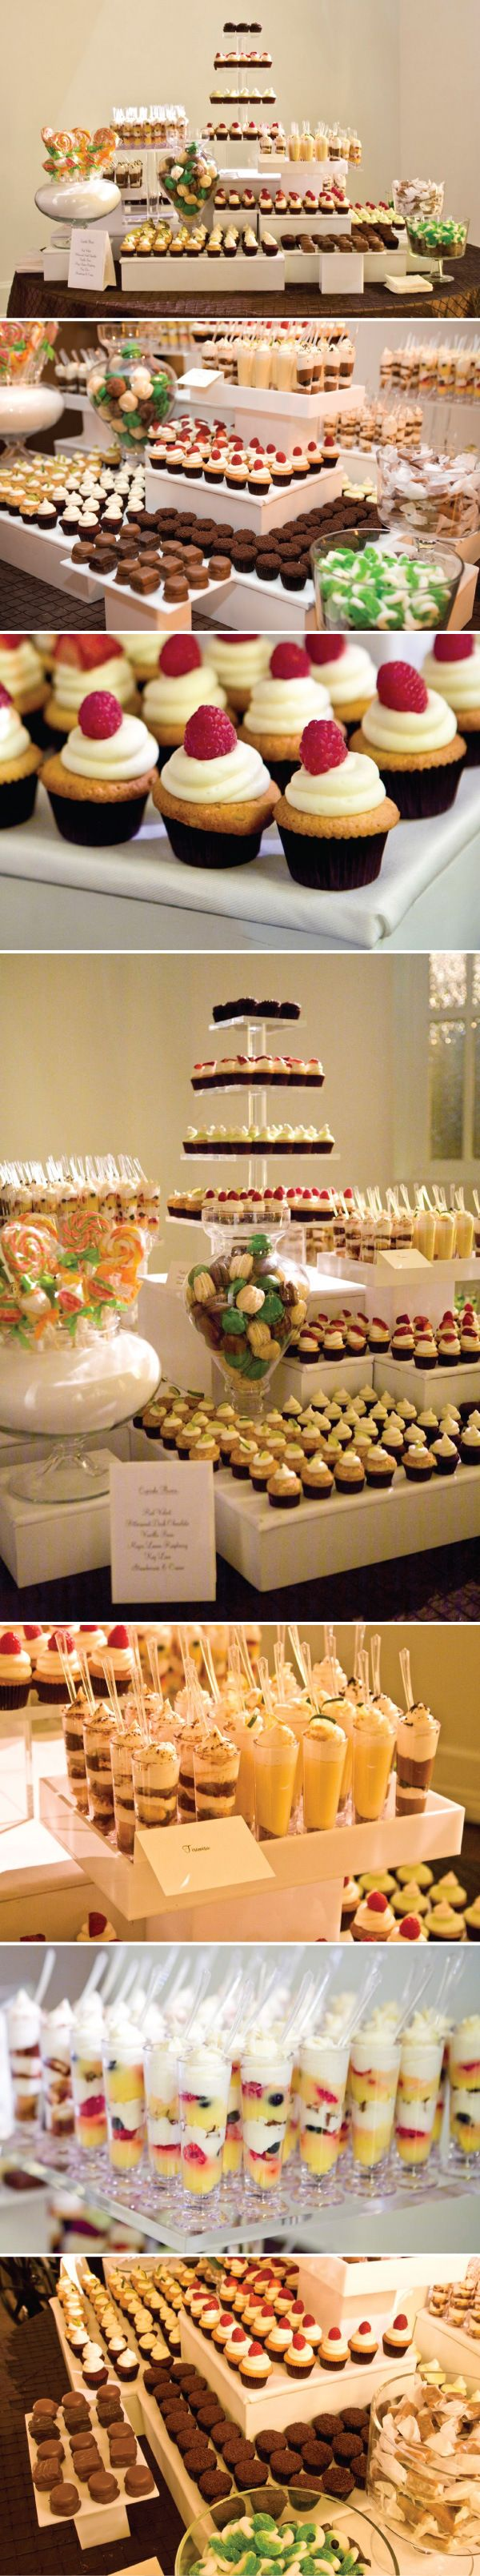 New Wedding Candy Buffet Photos! | ♥ Seven Weddings ♥